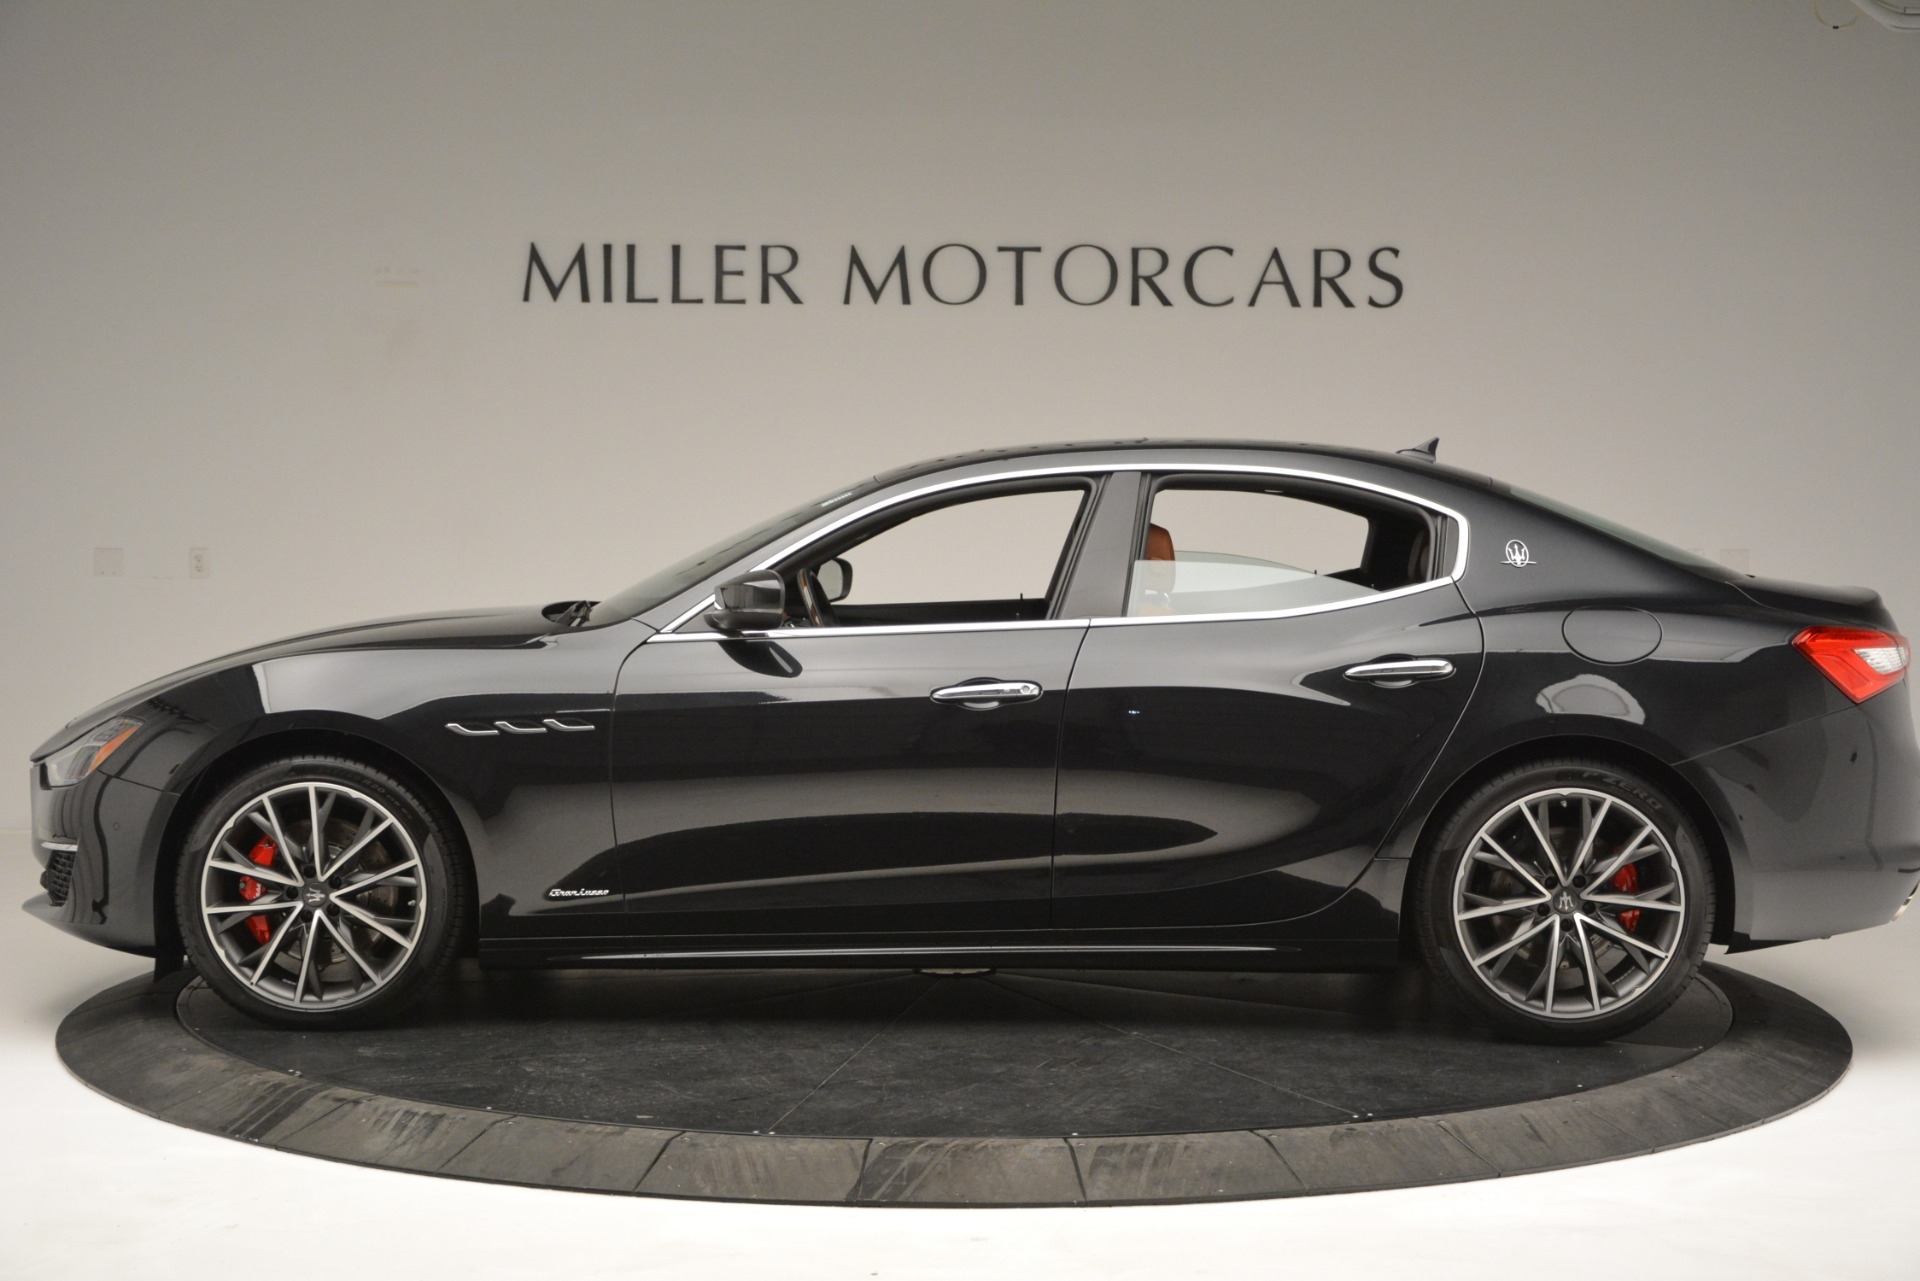 New 2019 Maserati Ghibli S Q4 GranLusso For Sale In Greenwich, CT. Alfa Romeo of Greenwich, M2223 2590_p3